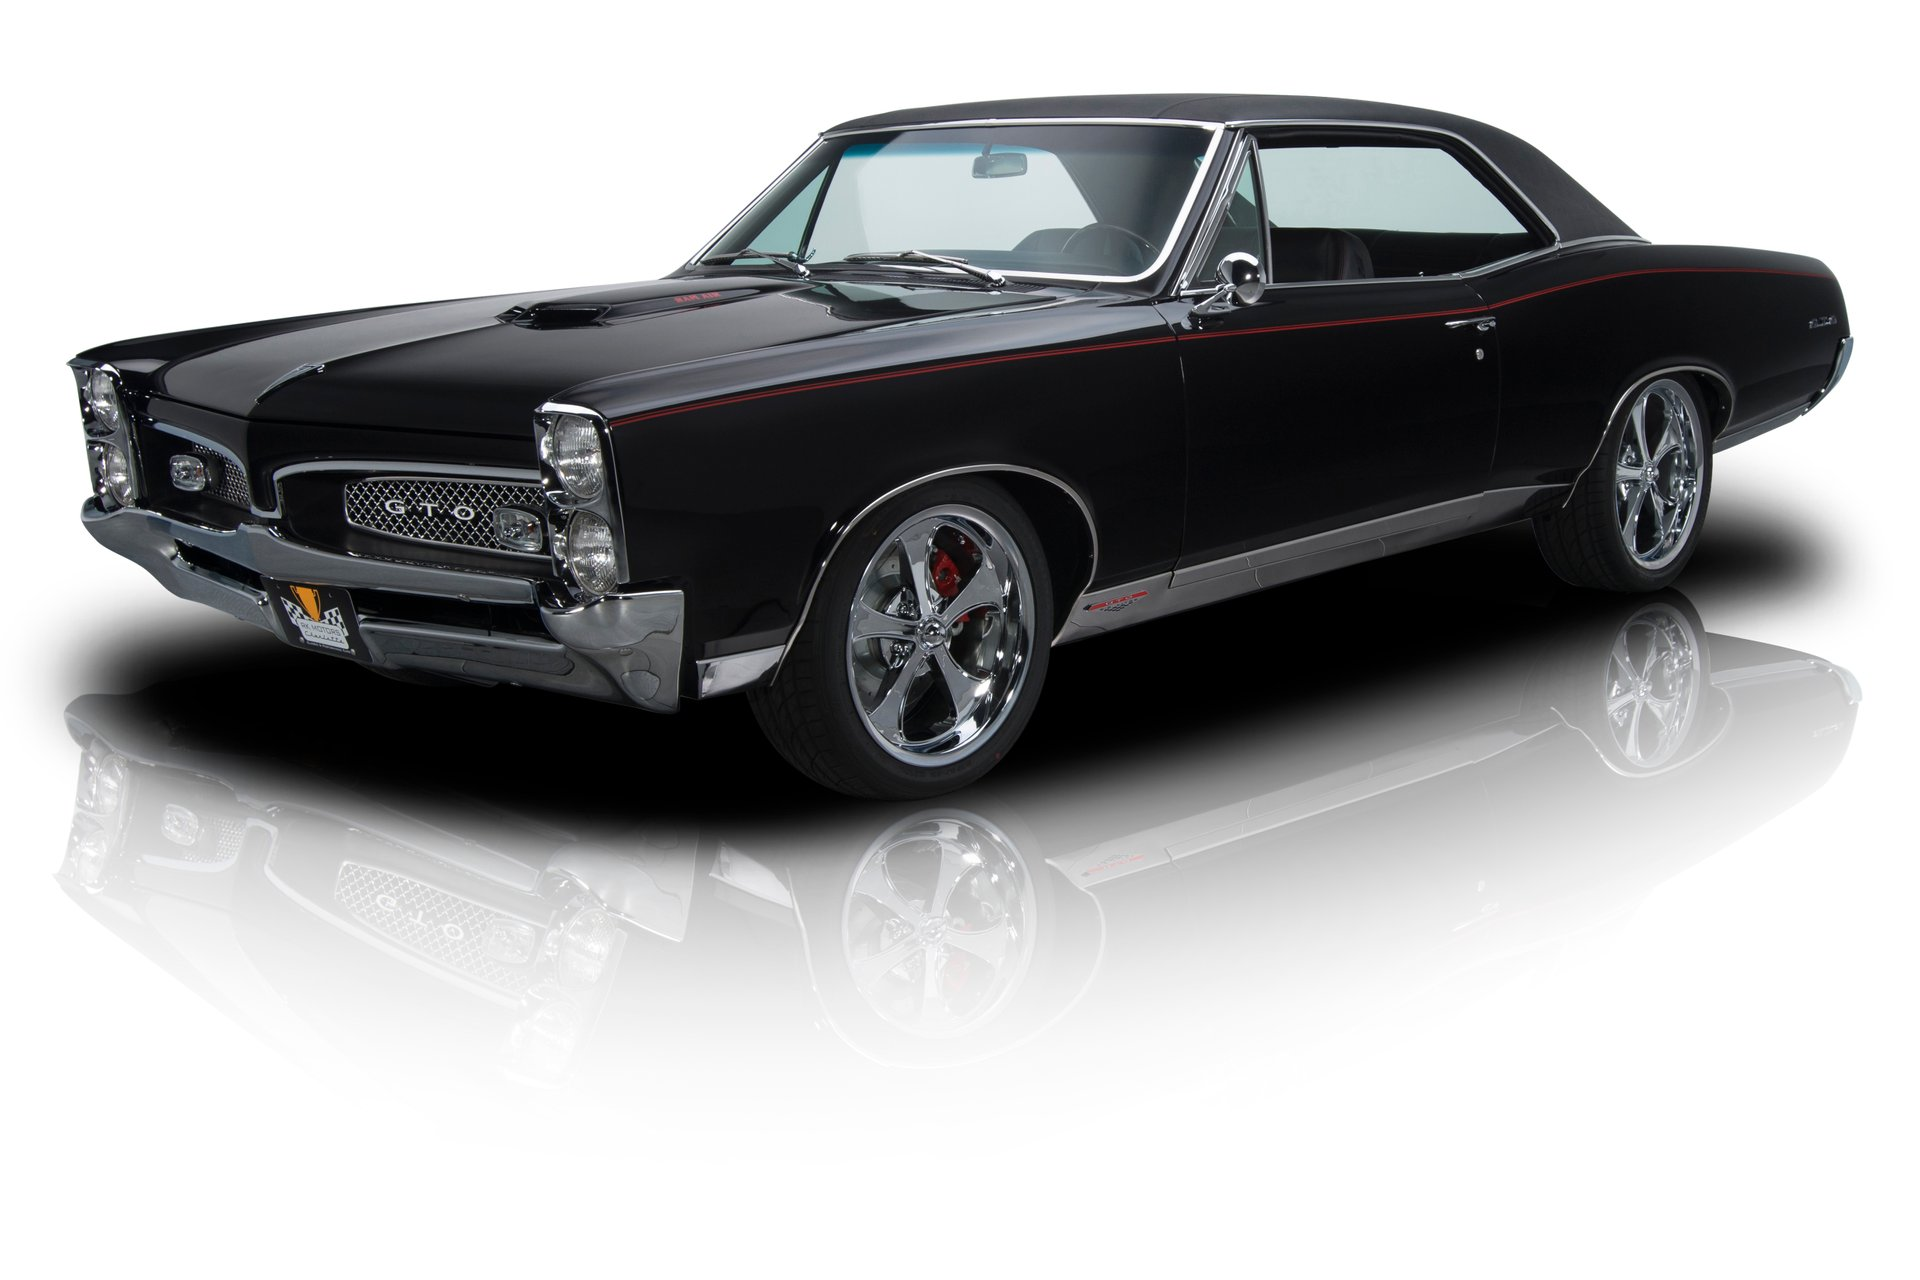 135838 1967 Pontiac Gto Rk Motors Classic Cars And Muscle Cars For Sale